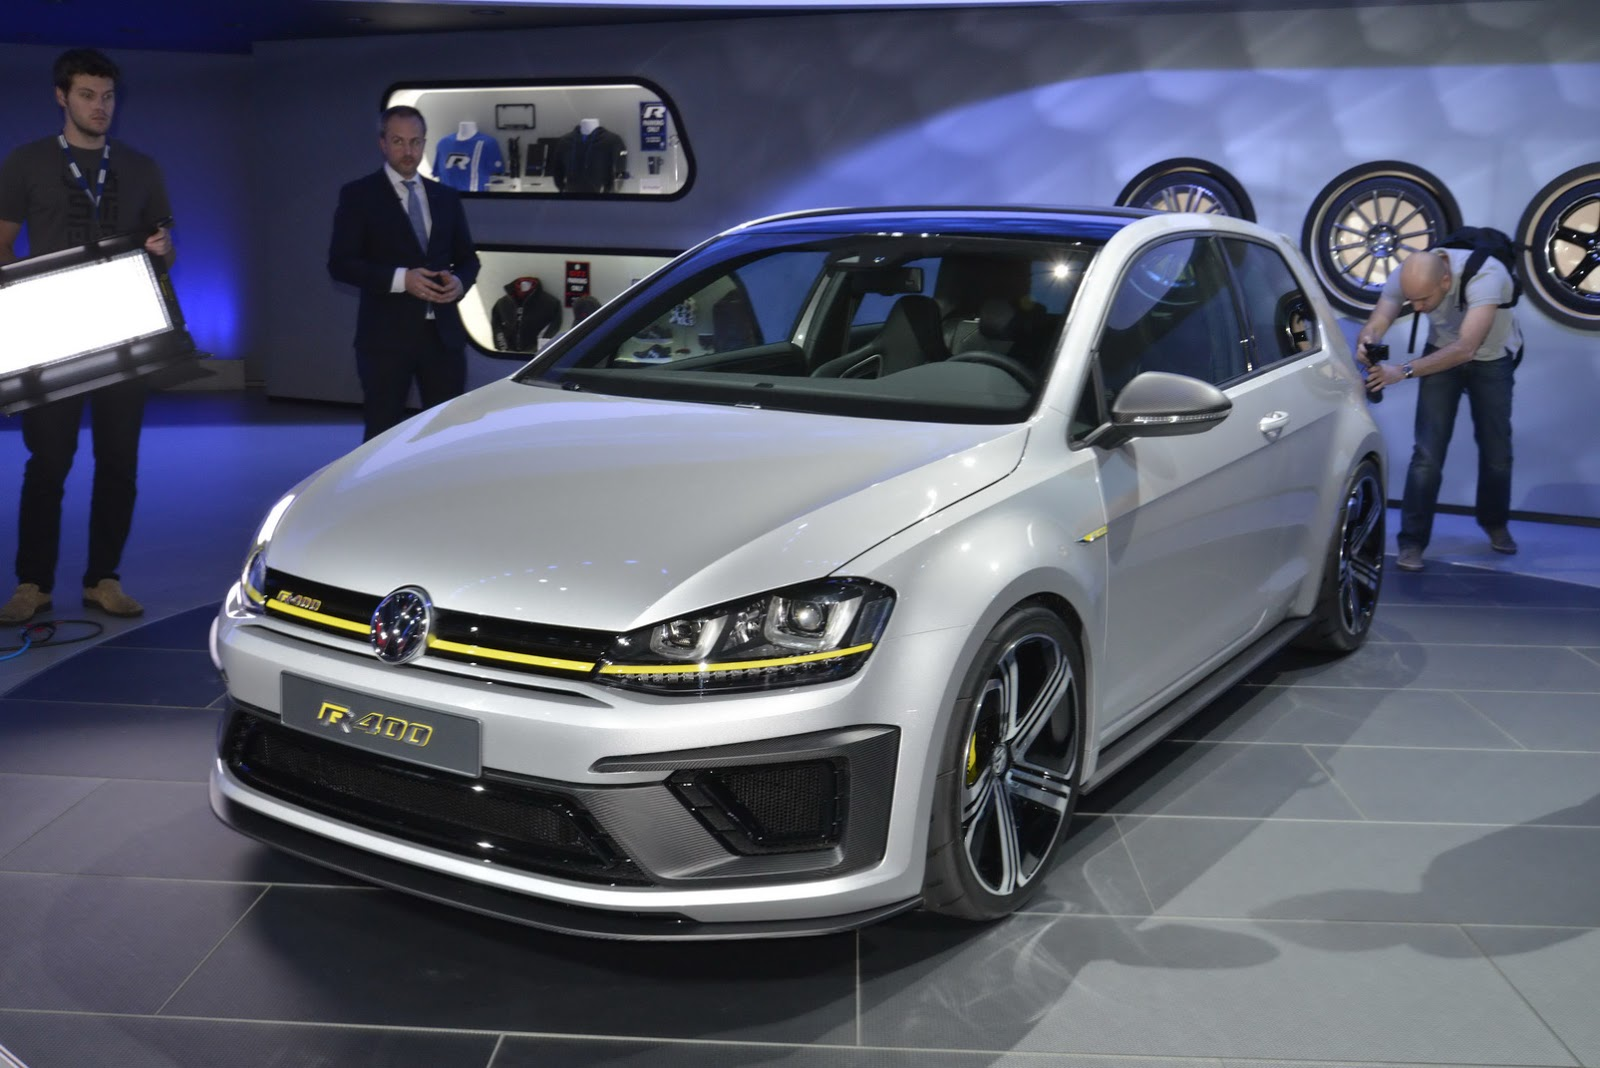 vw golf facelift could debut at geneva before r420 variant. Black Bedroom Furniture Sets. Home Design Ideas